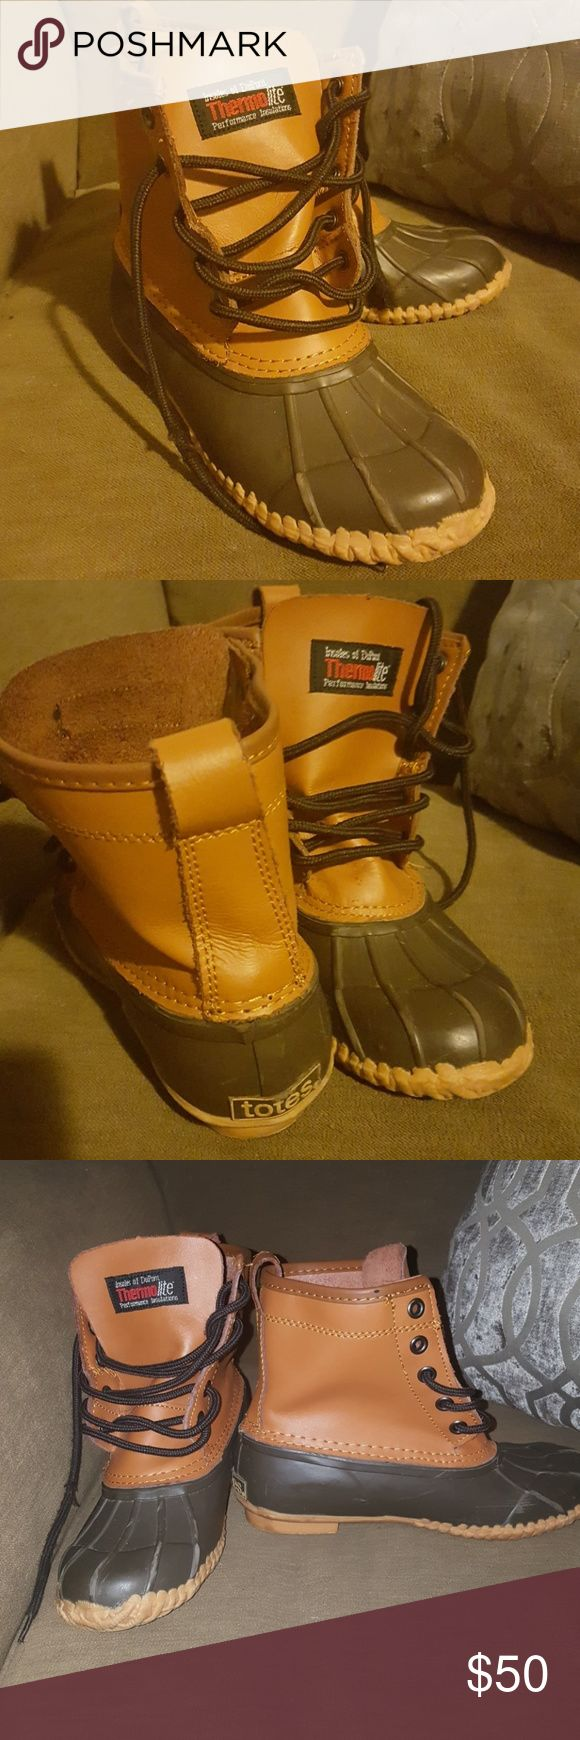 Totes Almost NEW SNOW BOOTS FOR GIRLS or BOYS Awesome water proof totes boots for girls or boys. They are size 4 in boys, 5 in girls. Totes Shoes Rain & Snow Boots